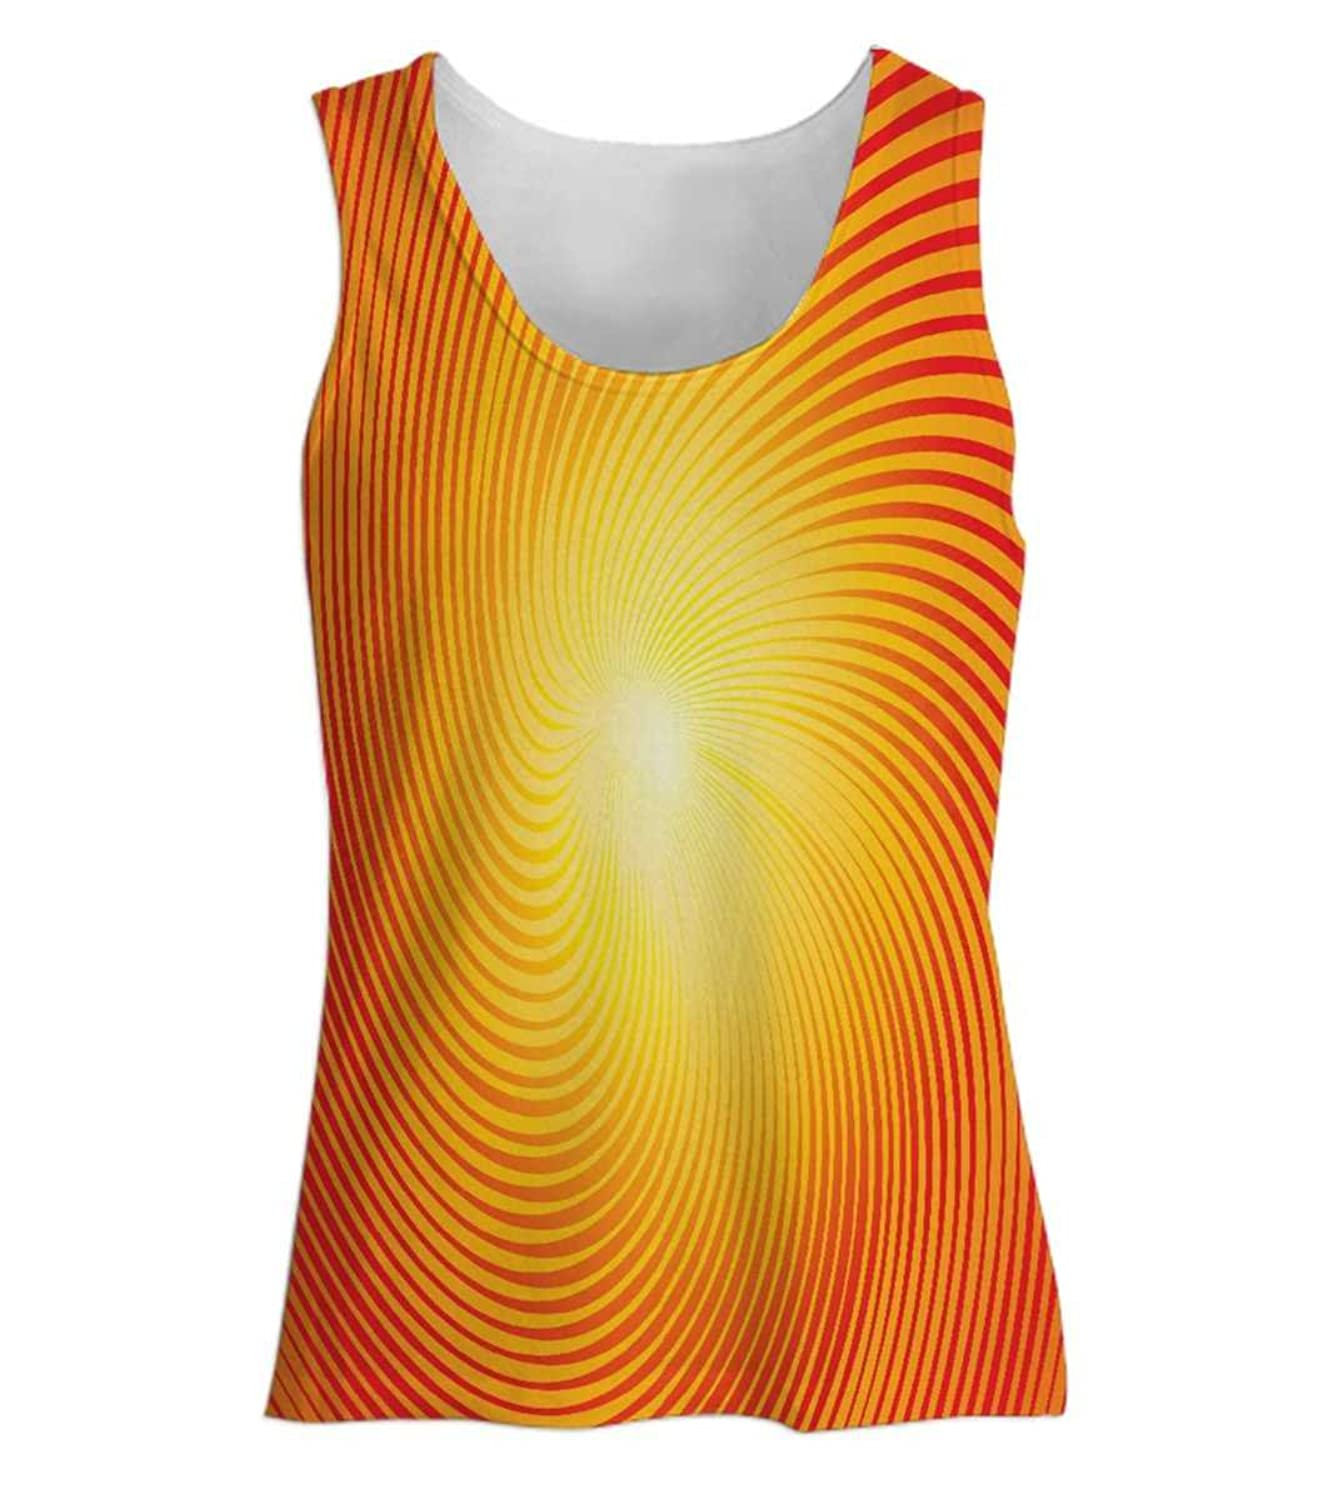 Snoogg Personalized Digitally Printed Tank Tops Vests Blouse Sleeveless Casual T shirts for Women / Girls